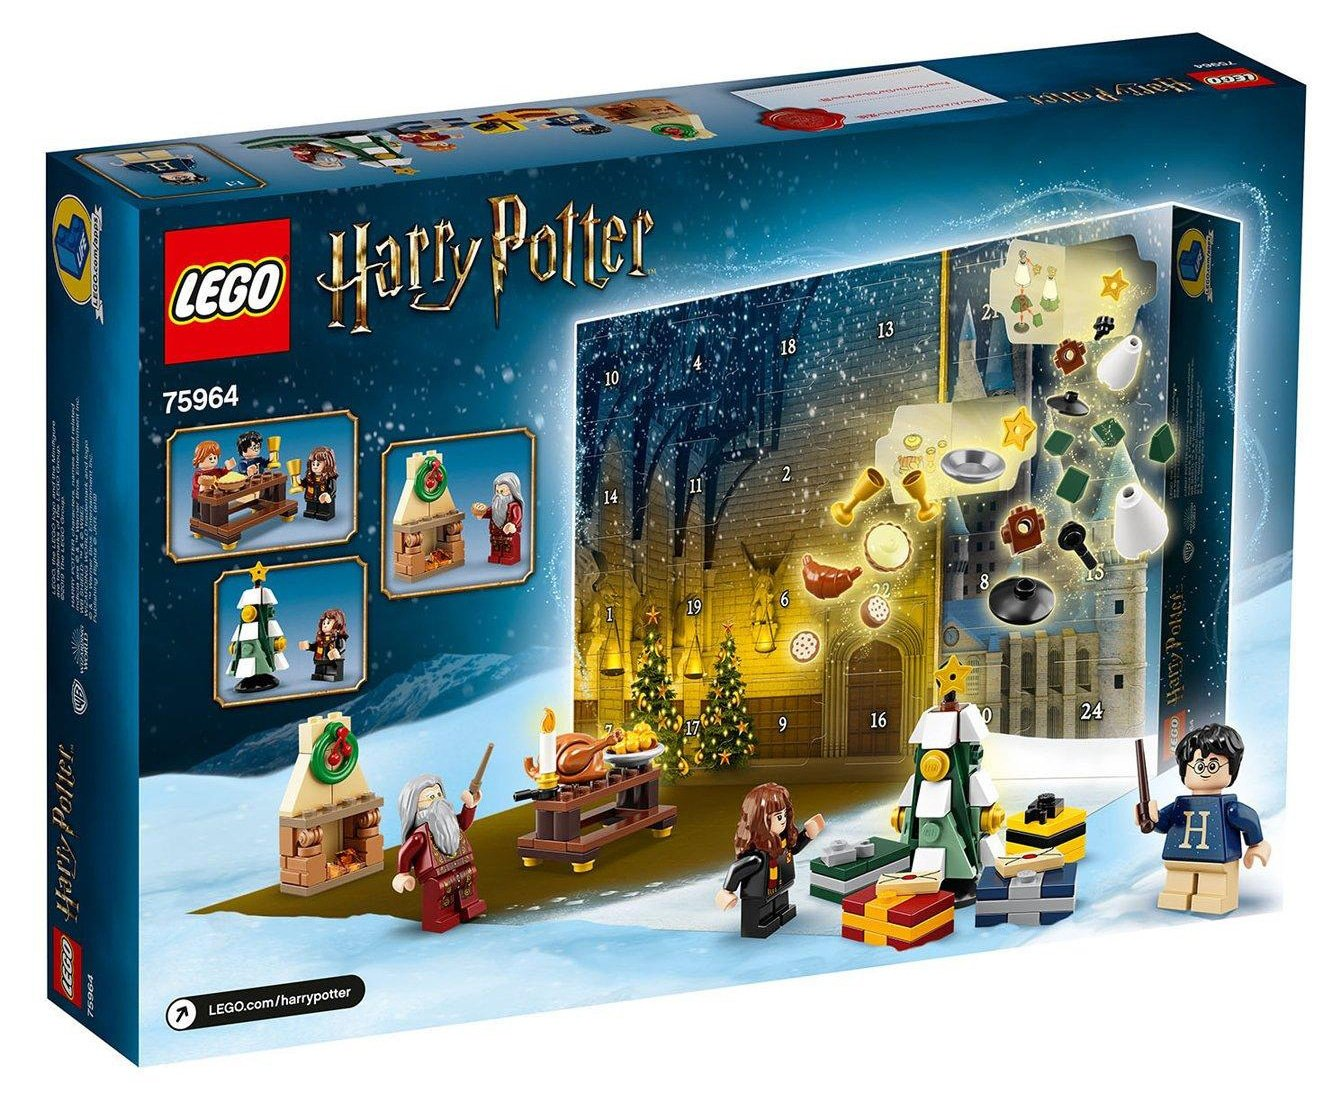 LEGO 75964 Harry Potter Adventskalender